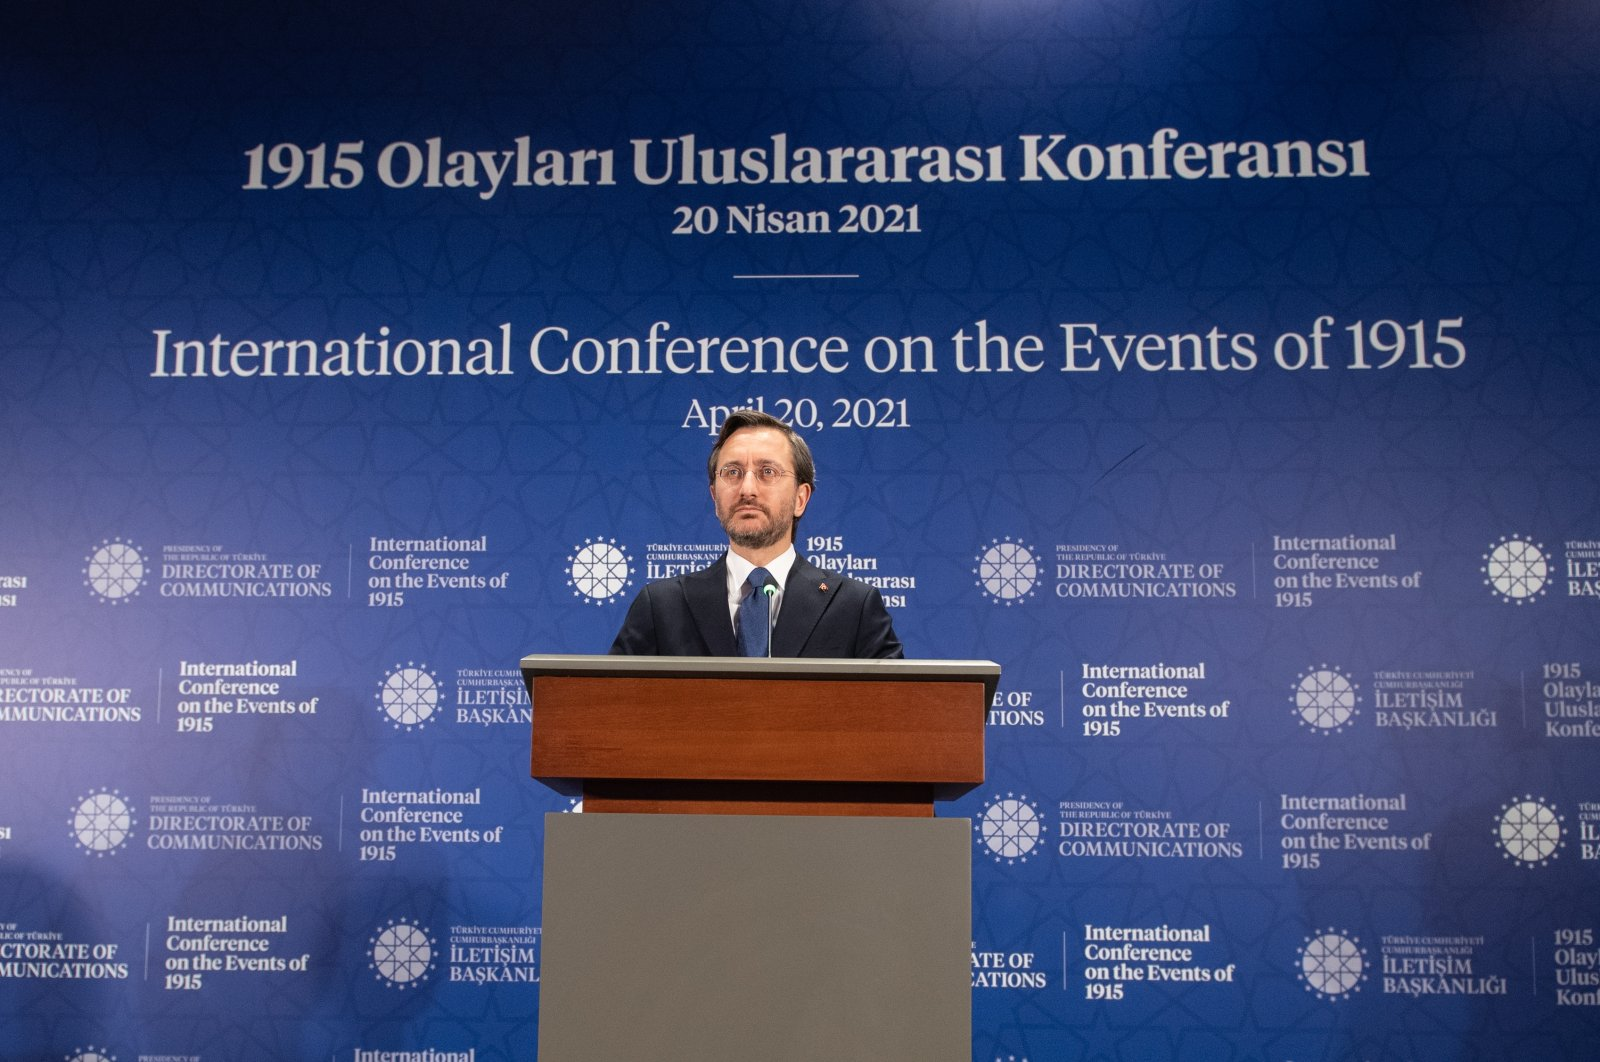 Turkey's Presidential Communications Director Fahrettin Altun speaks at the International Conference on the Events of 1915, in the capital Ankara, Turkey, April 20, 2021. (AA Photo)